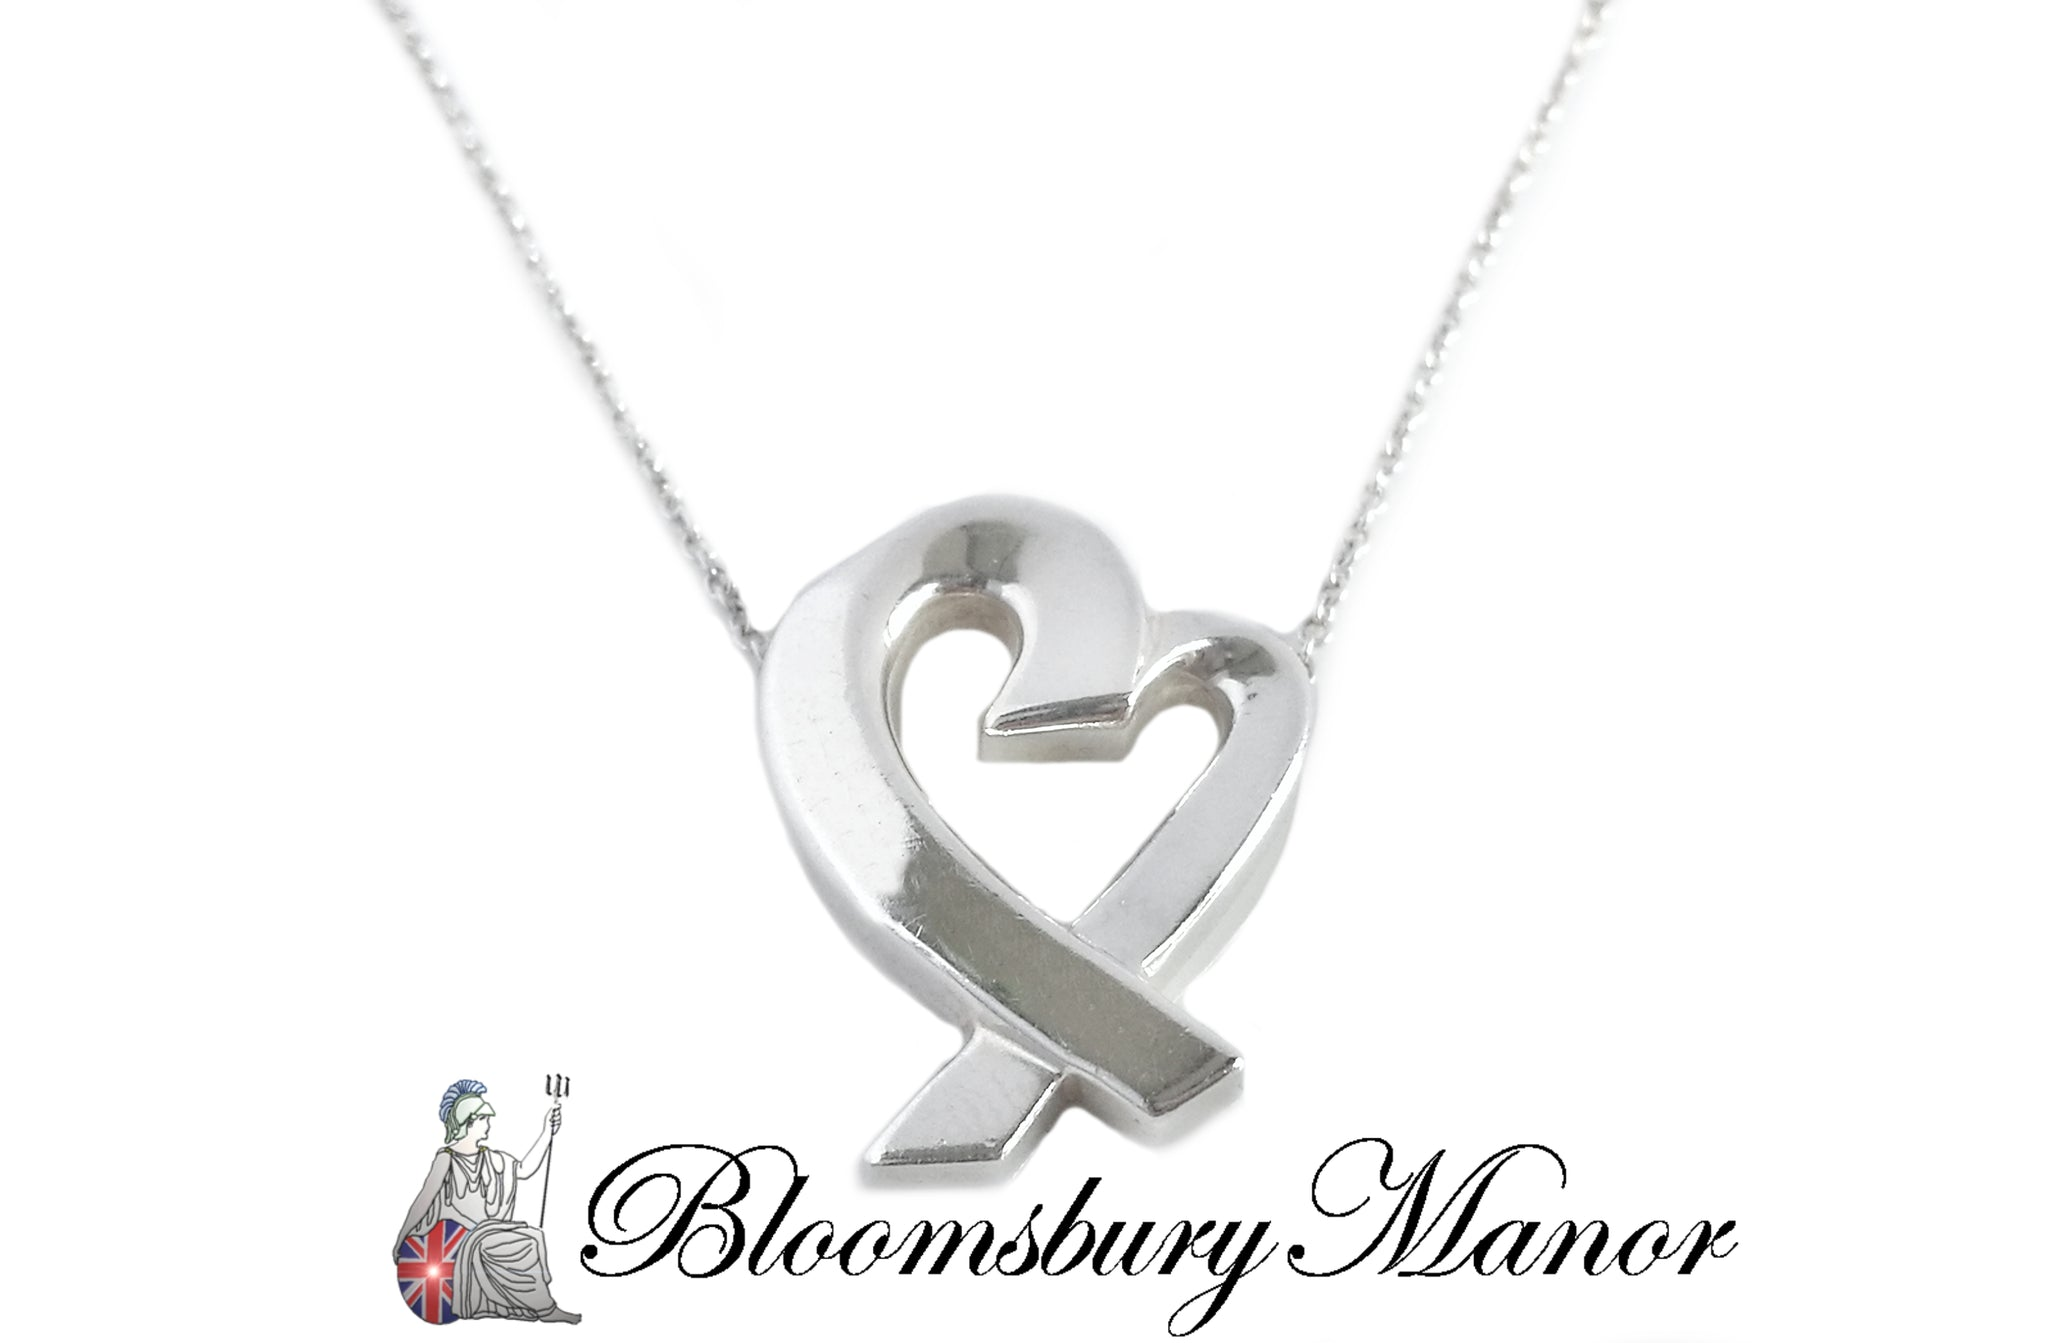 Tiffany Co Paloma Picasso Sterling Silver Loving Heart 18 Inch Neck Bloomsbury Manor Ltd